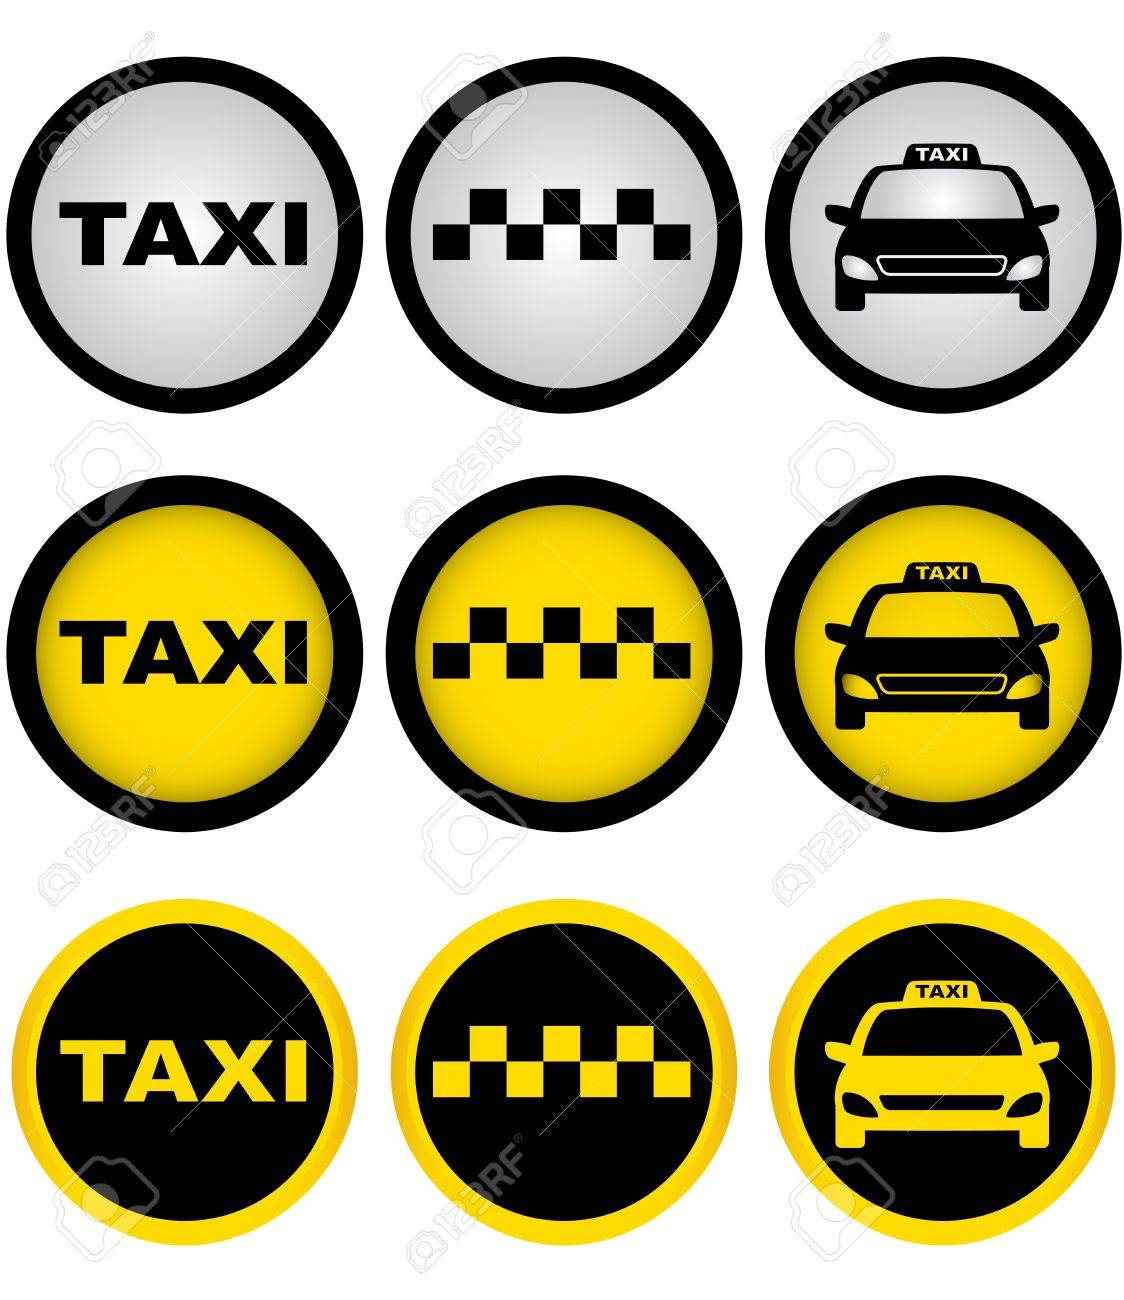 set of colorful taxi signs with cab image